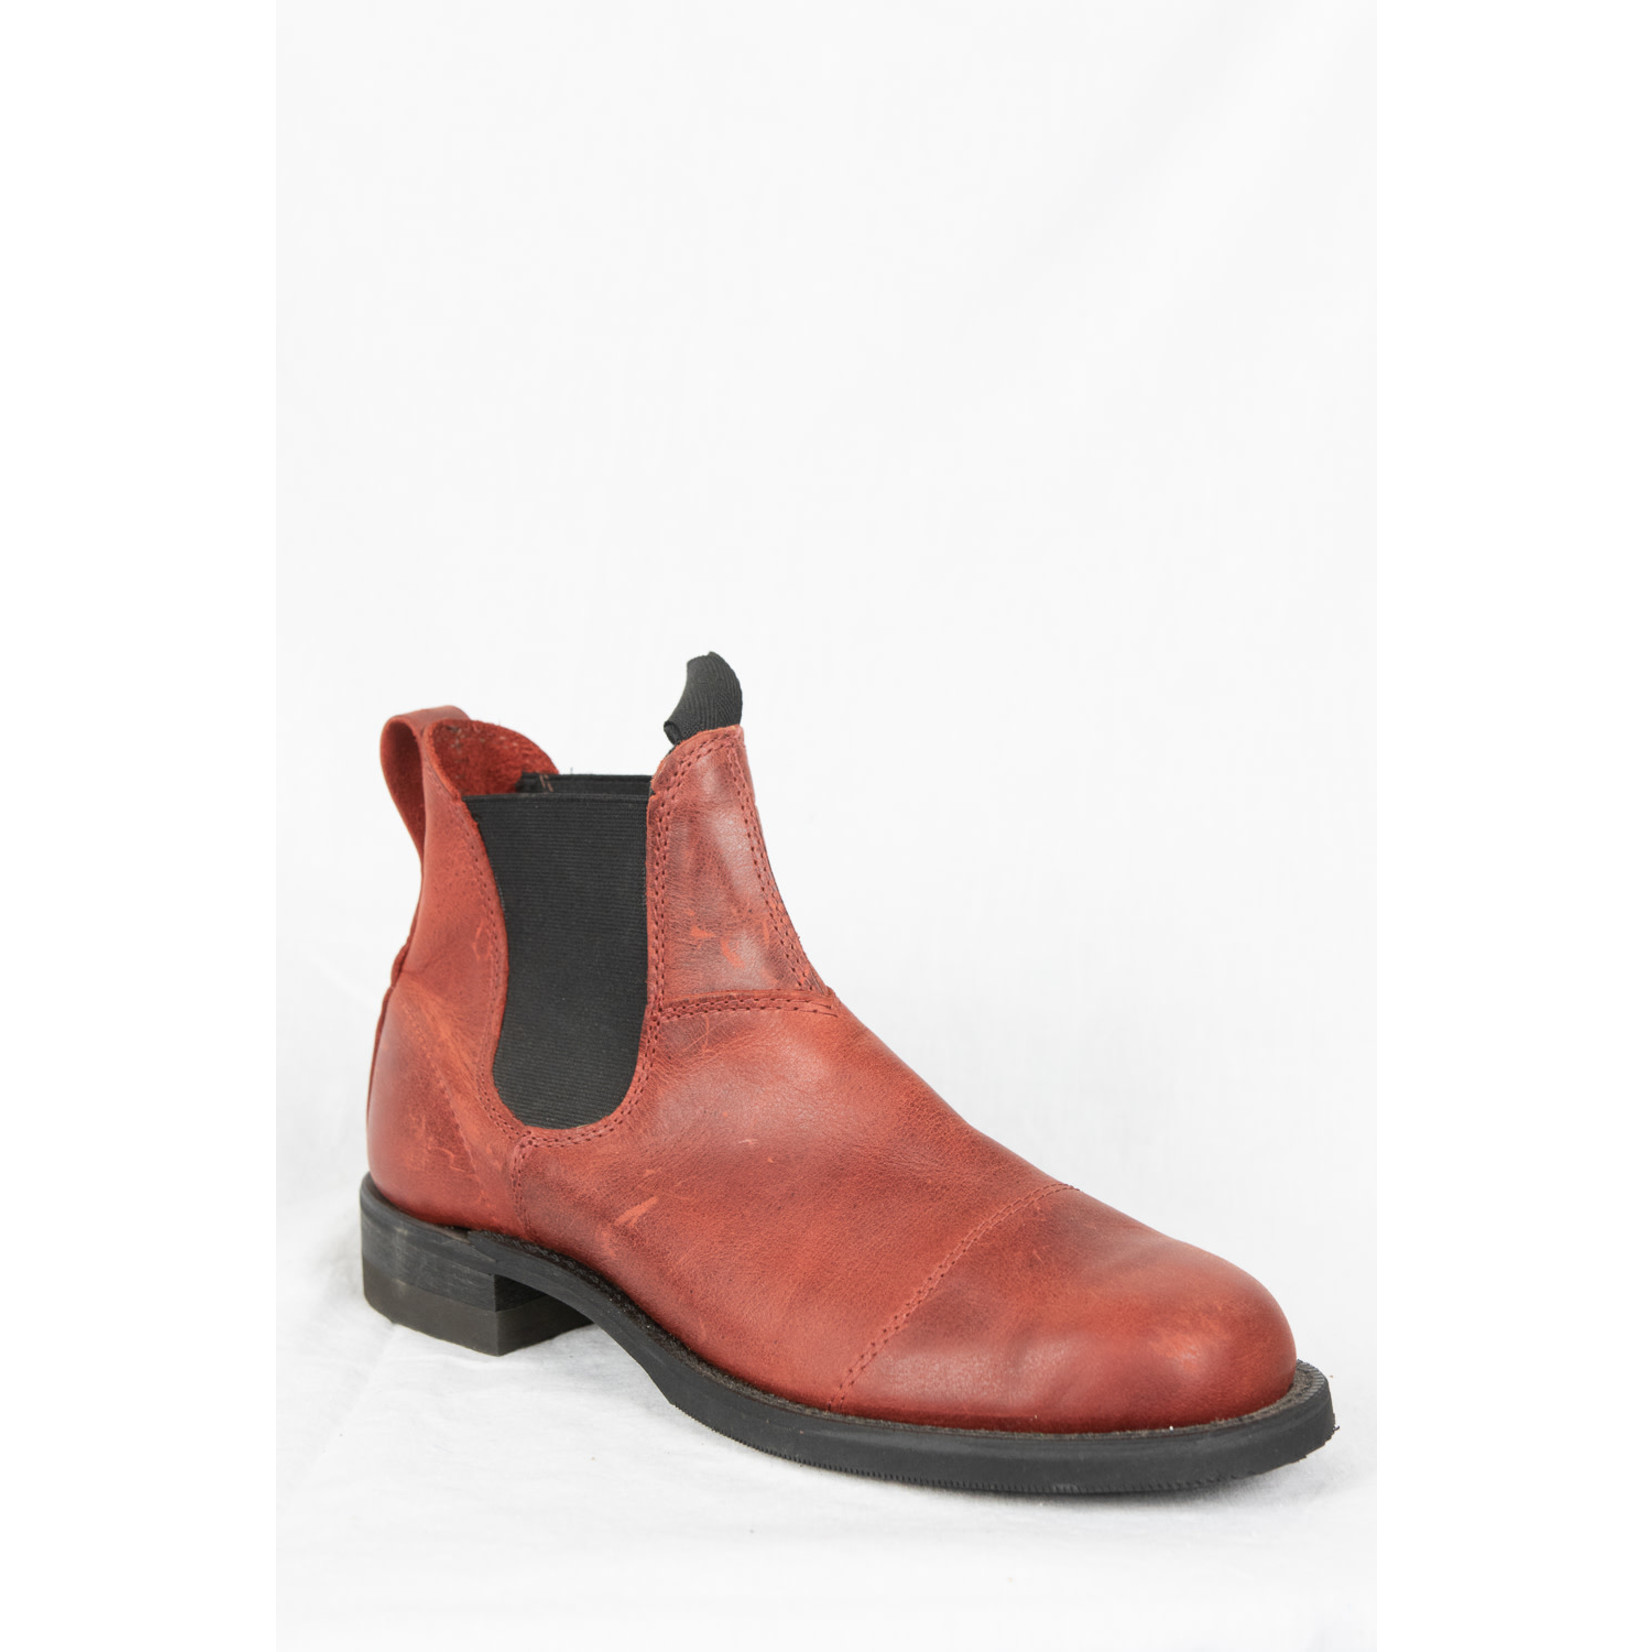 Canada West Women's Rodeo Boot - Sly Fox Red